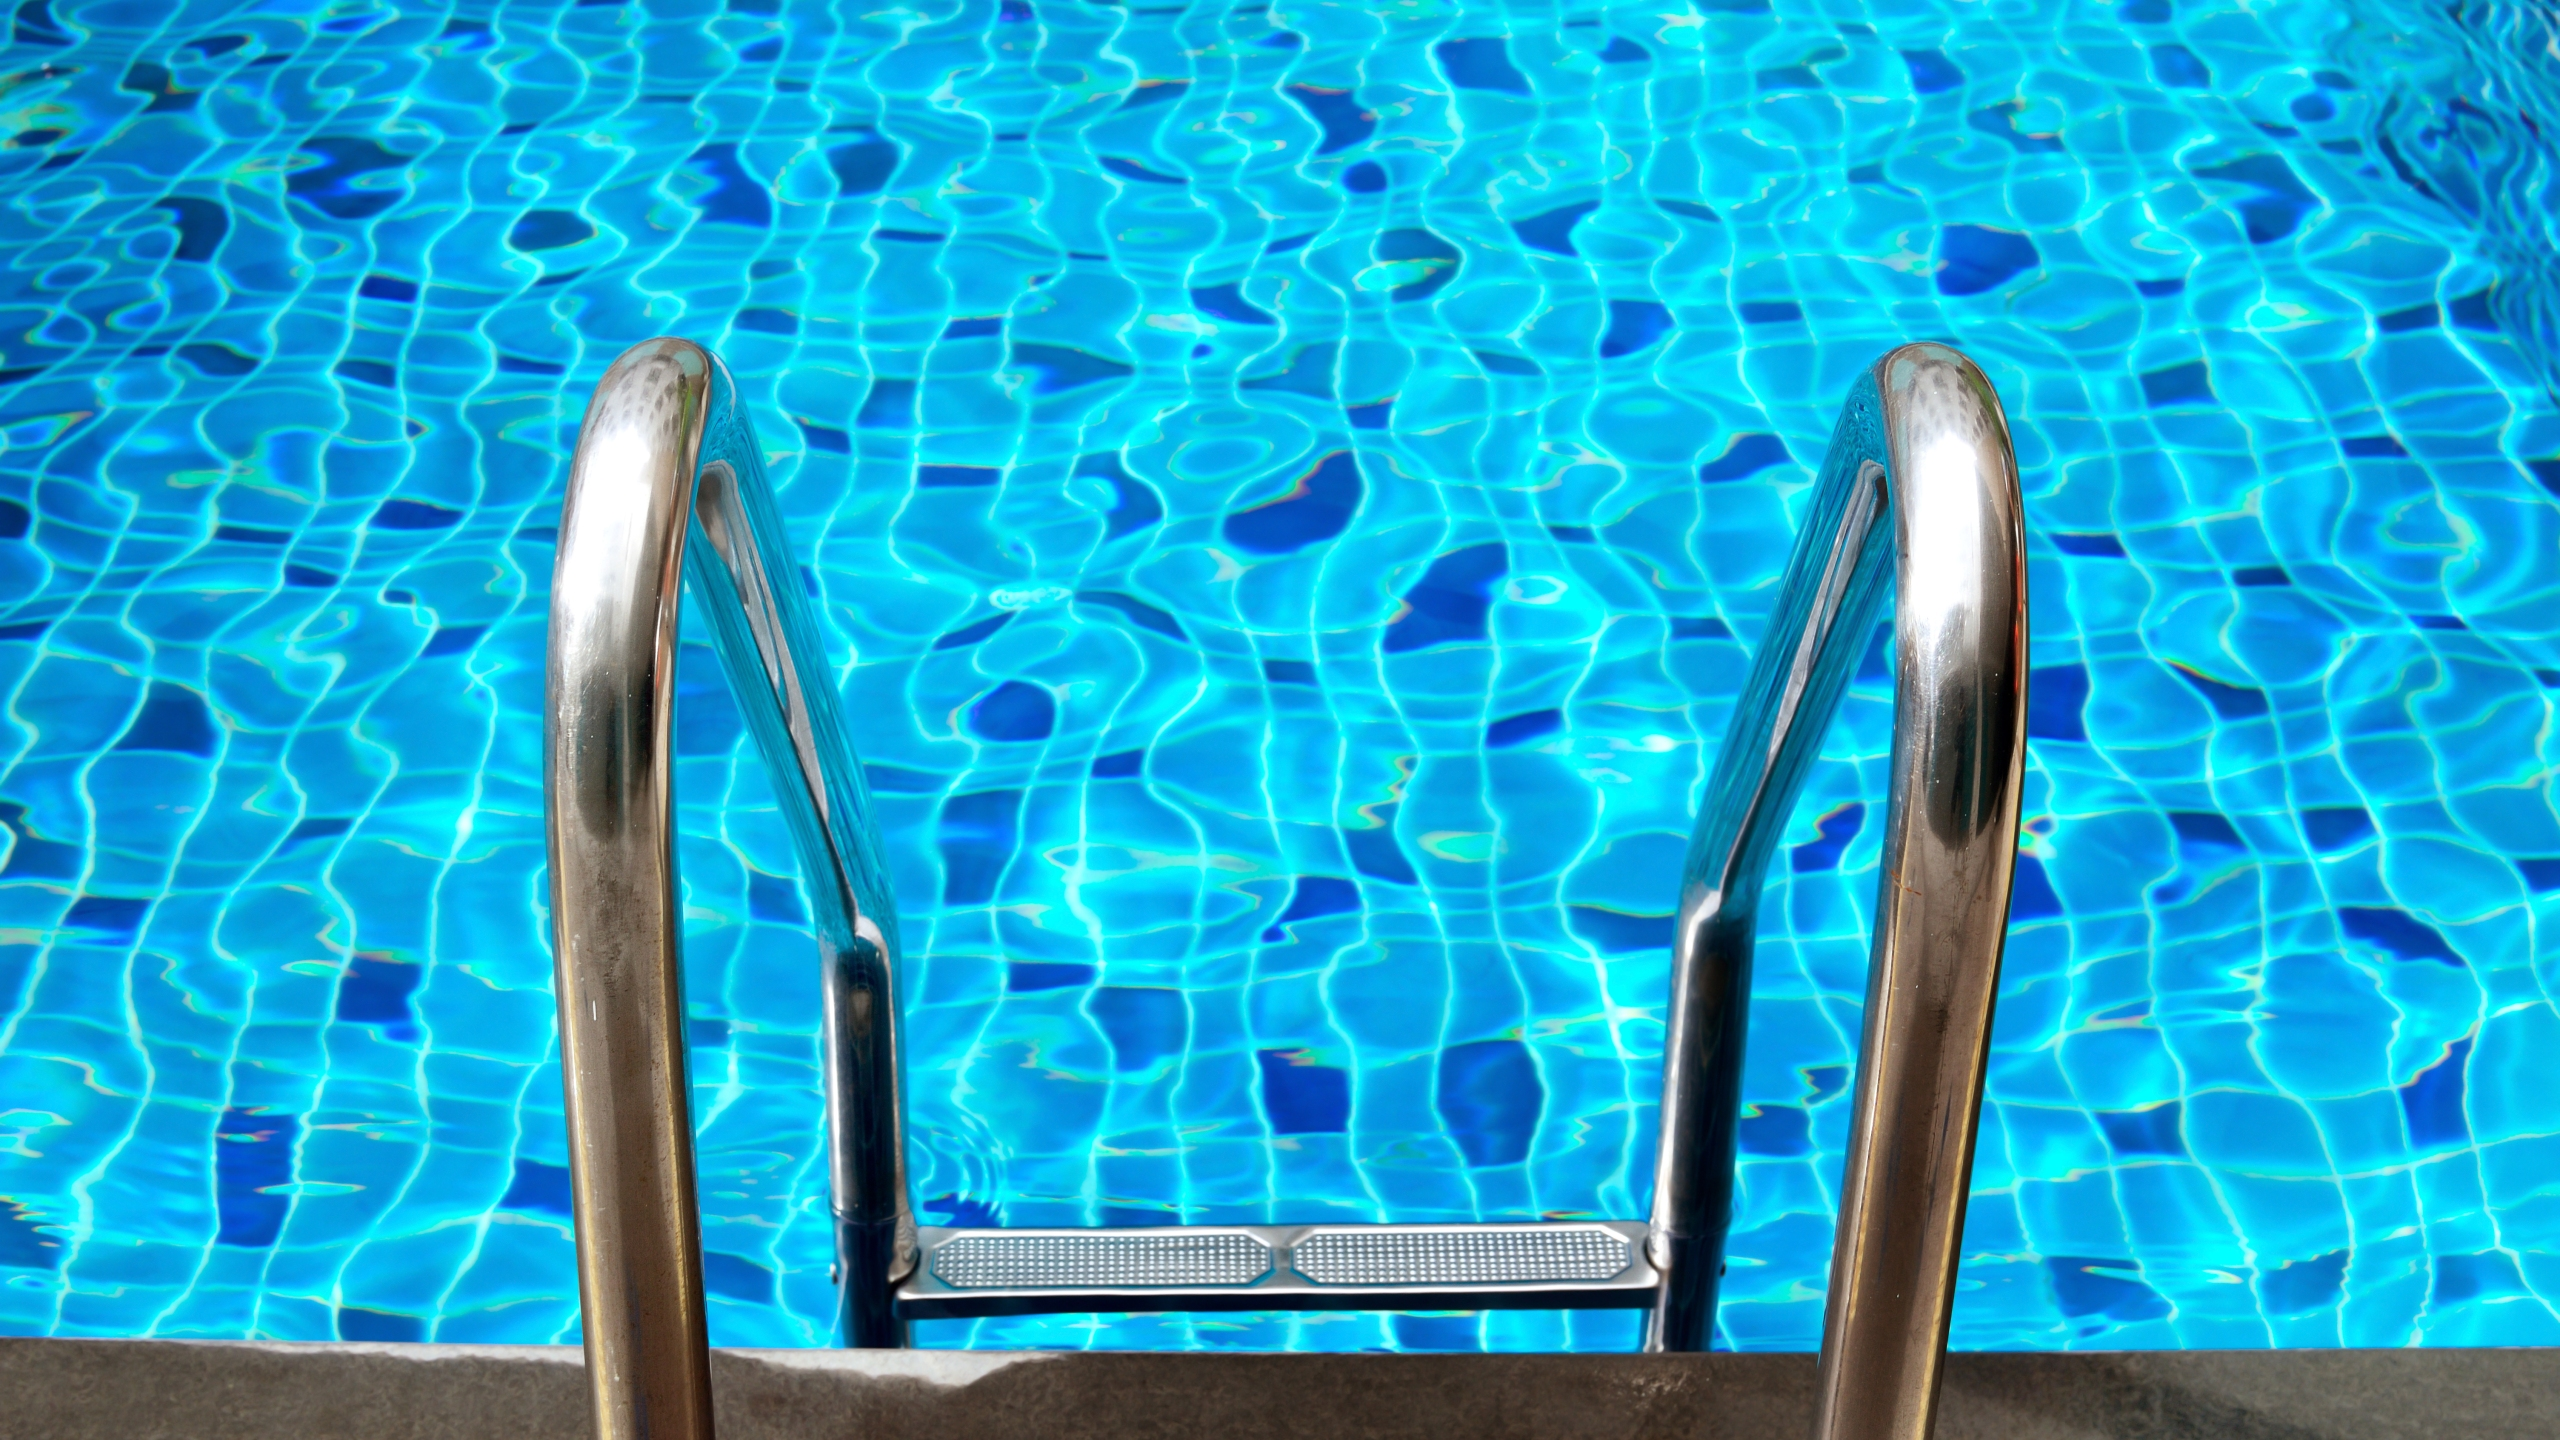 Indianapolis pools reopen with COVID safety measures